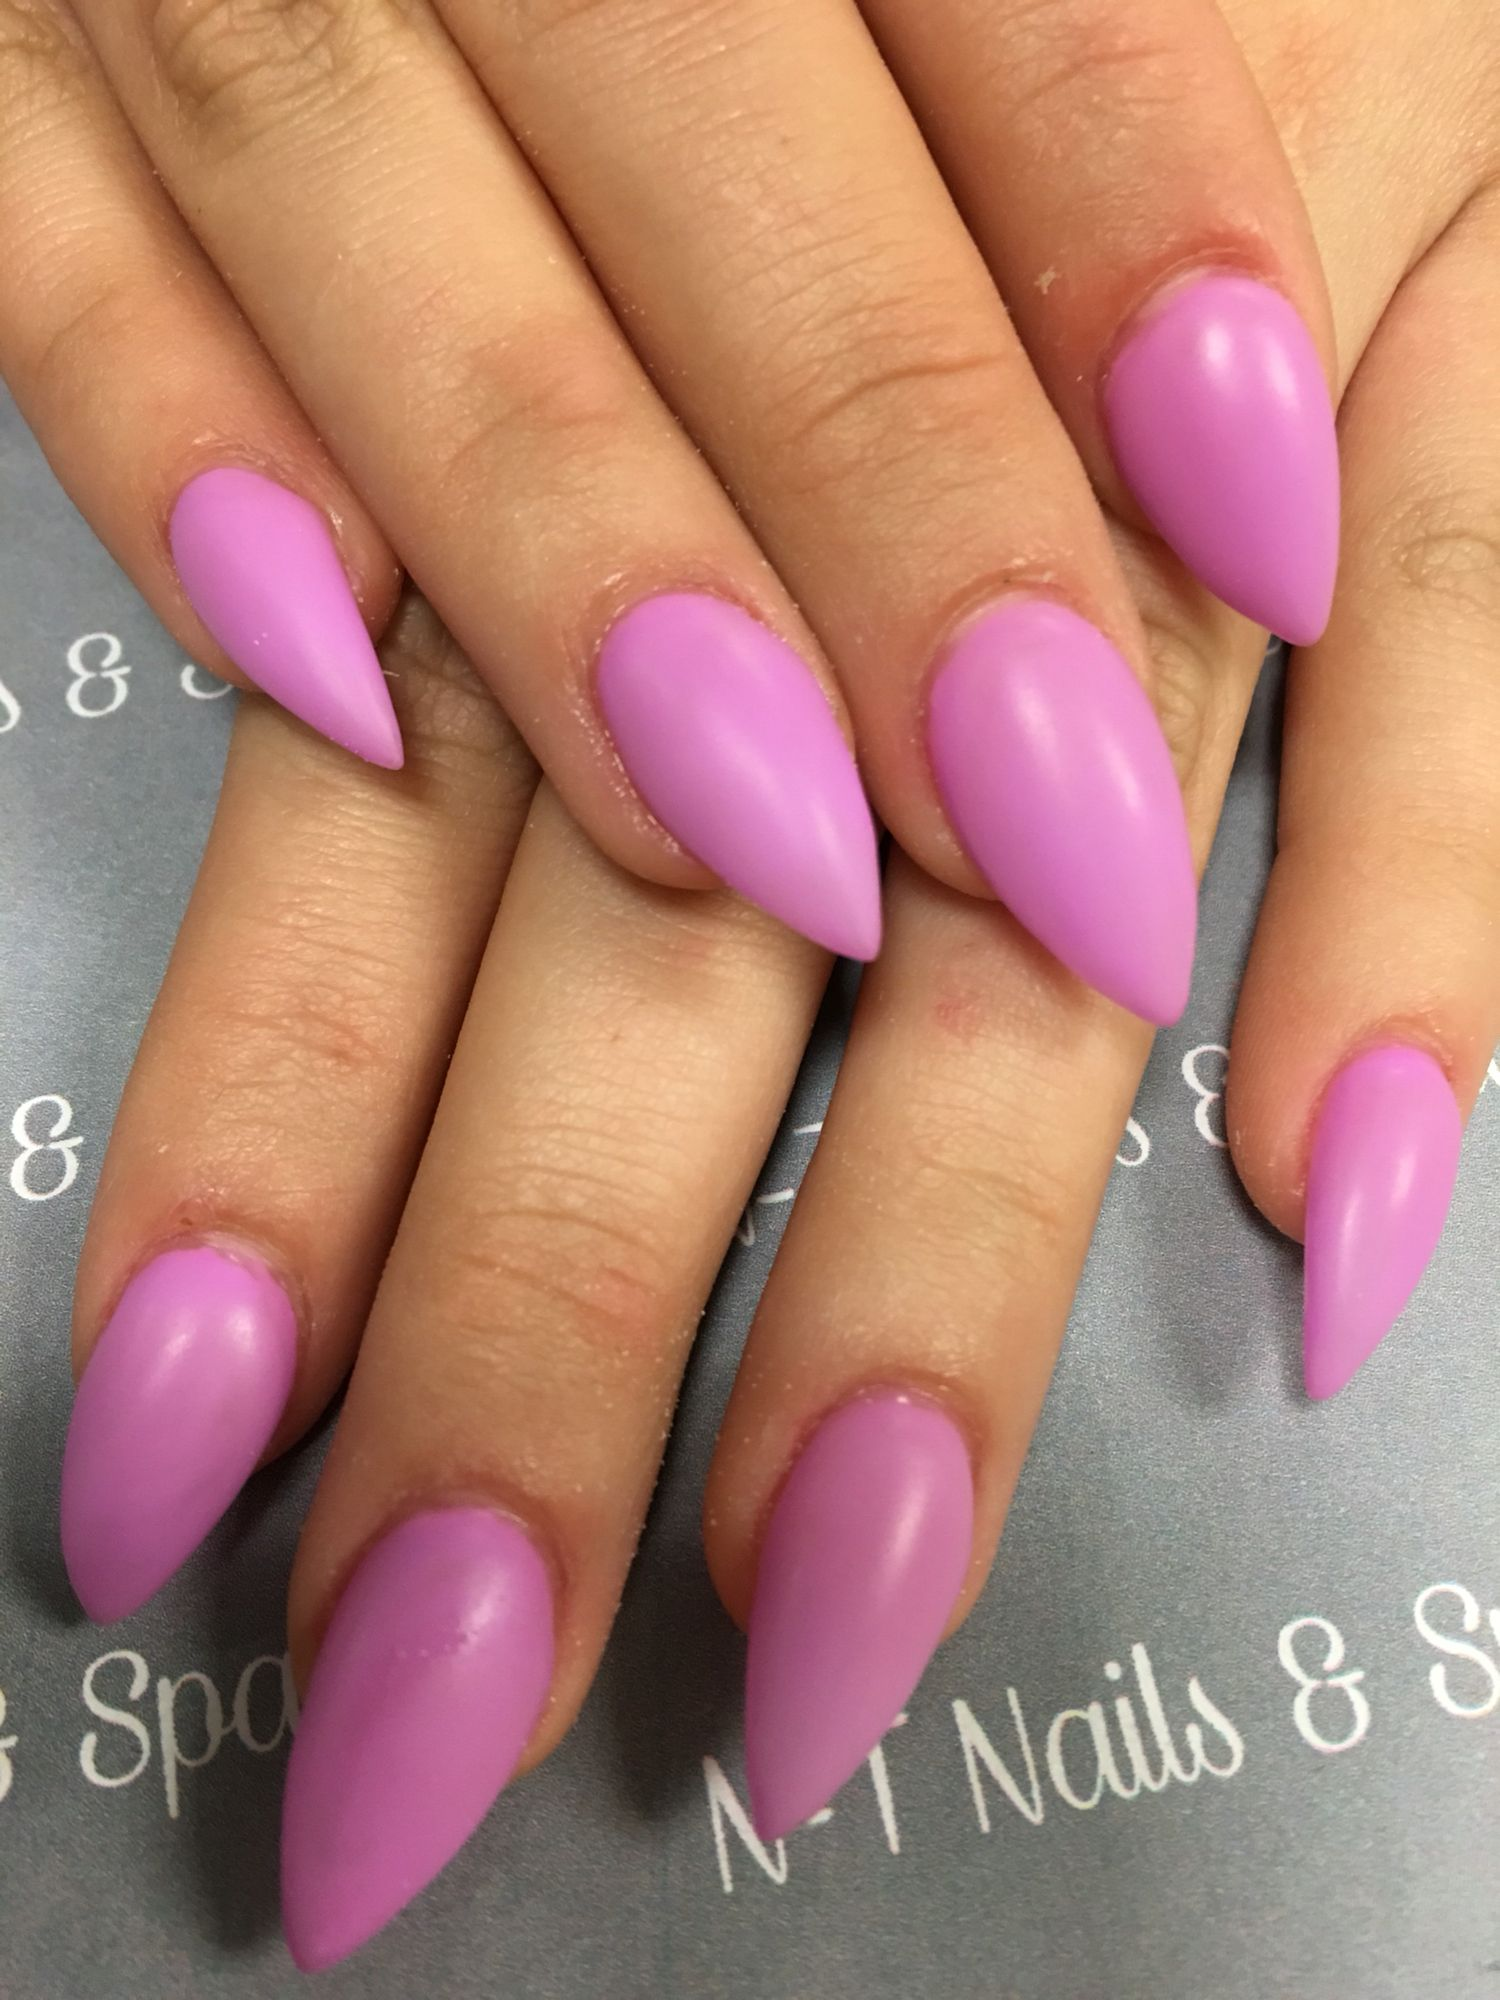 nt nails and beauty